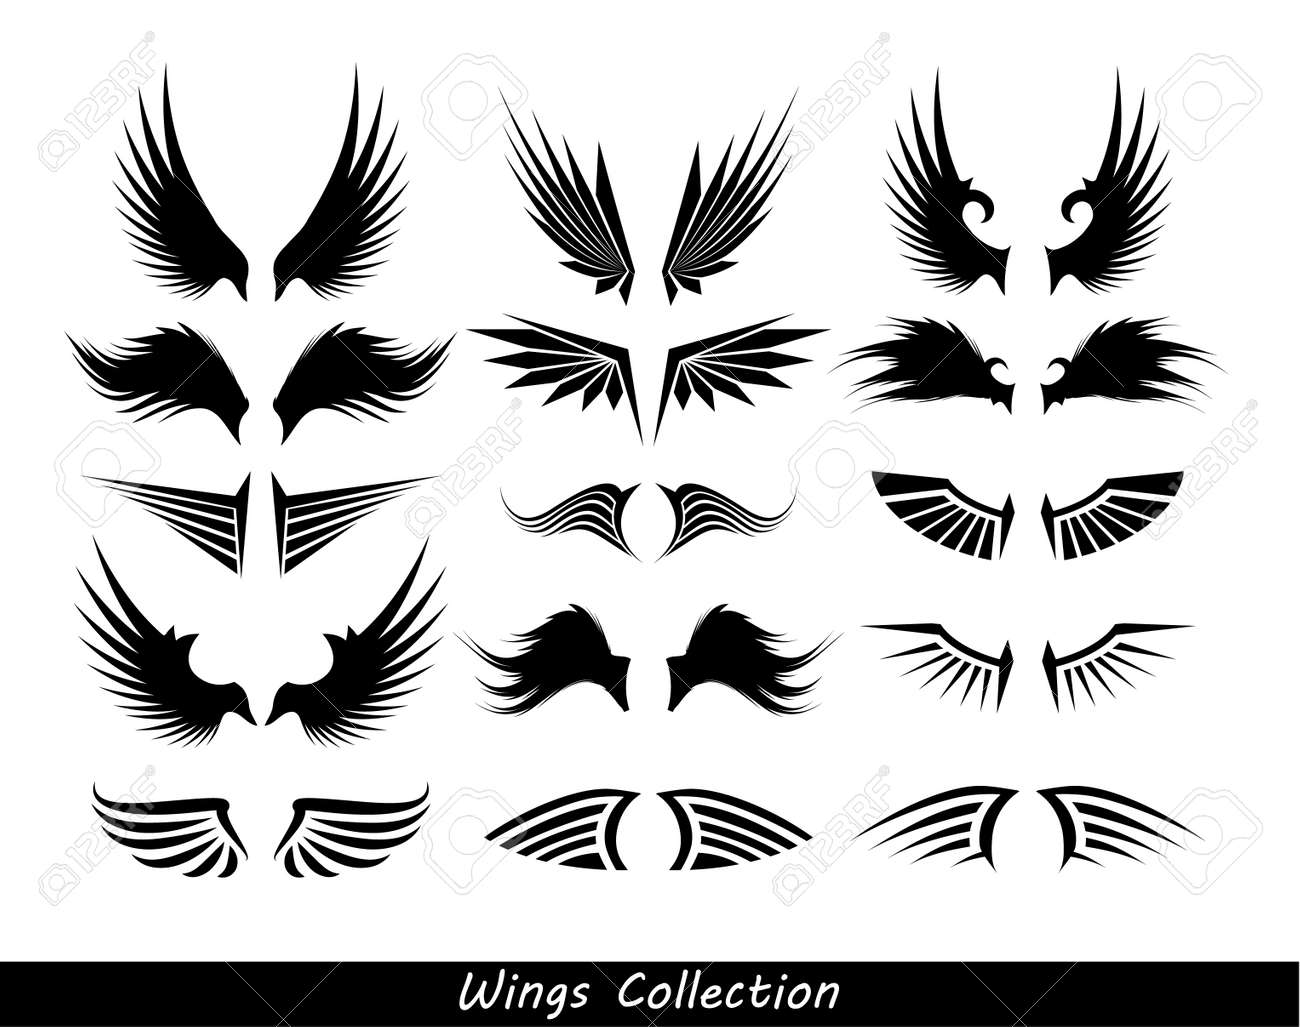 wings collection (set of wings) Stock Photo - 14648186